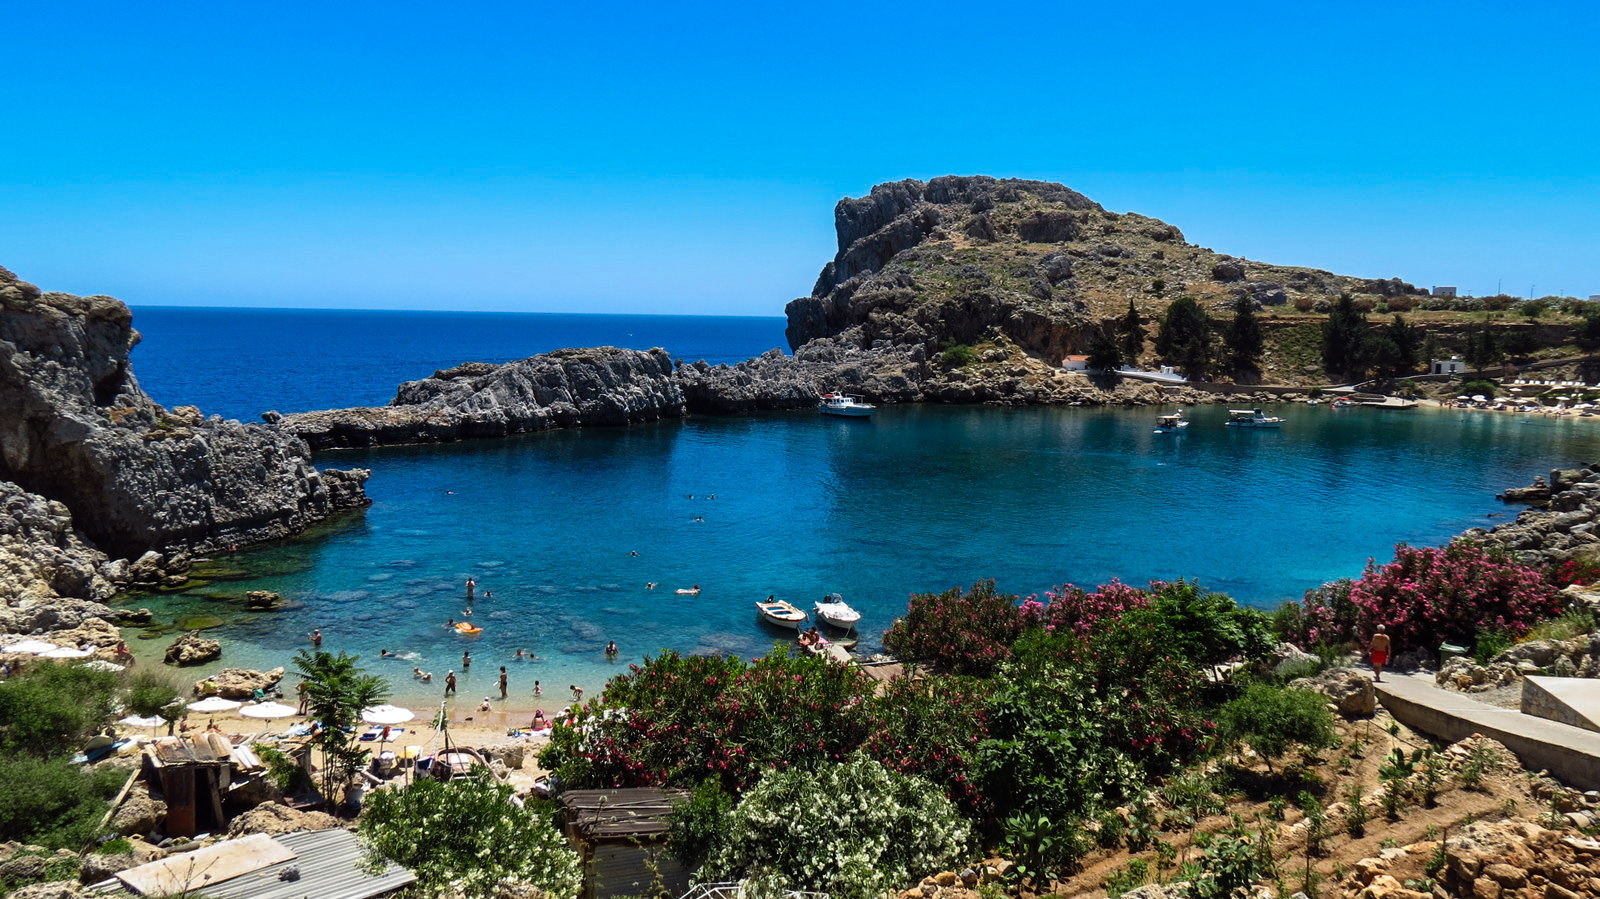 Saint Paul's Bay (Agios Pavlos) in Lindos on the island of Rhodes.